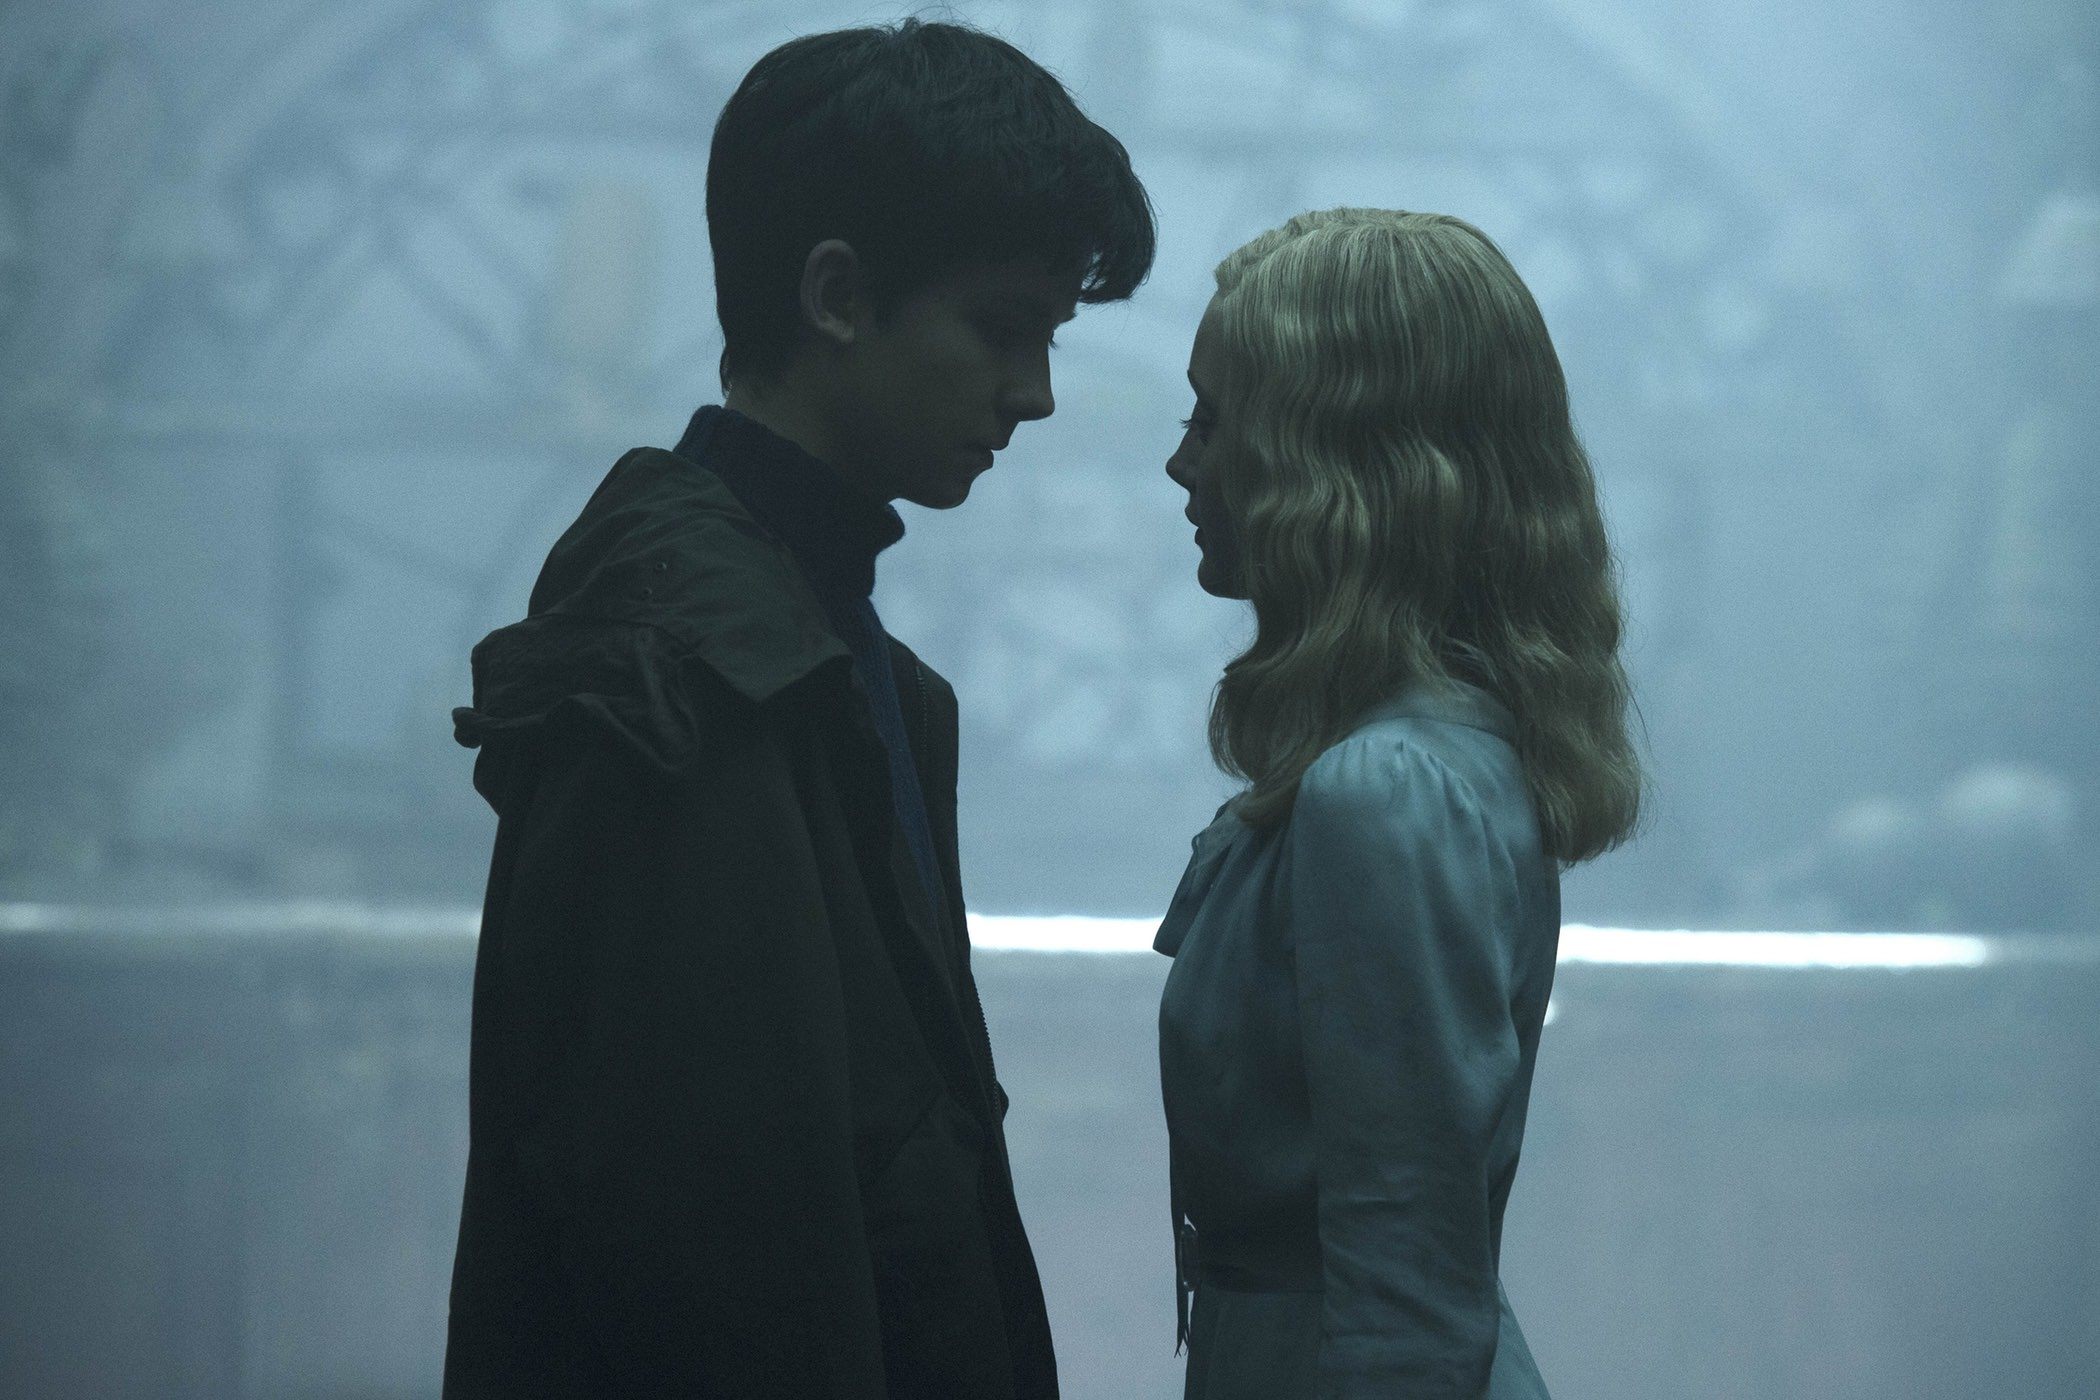 miss-peregrine-enfants-particuliers-asa-butterfield-ella-purnell